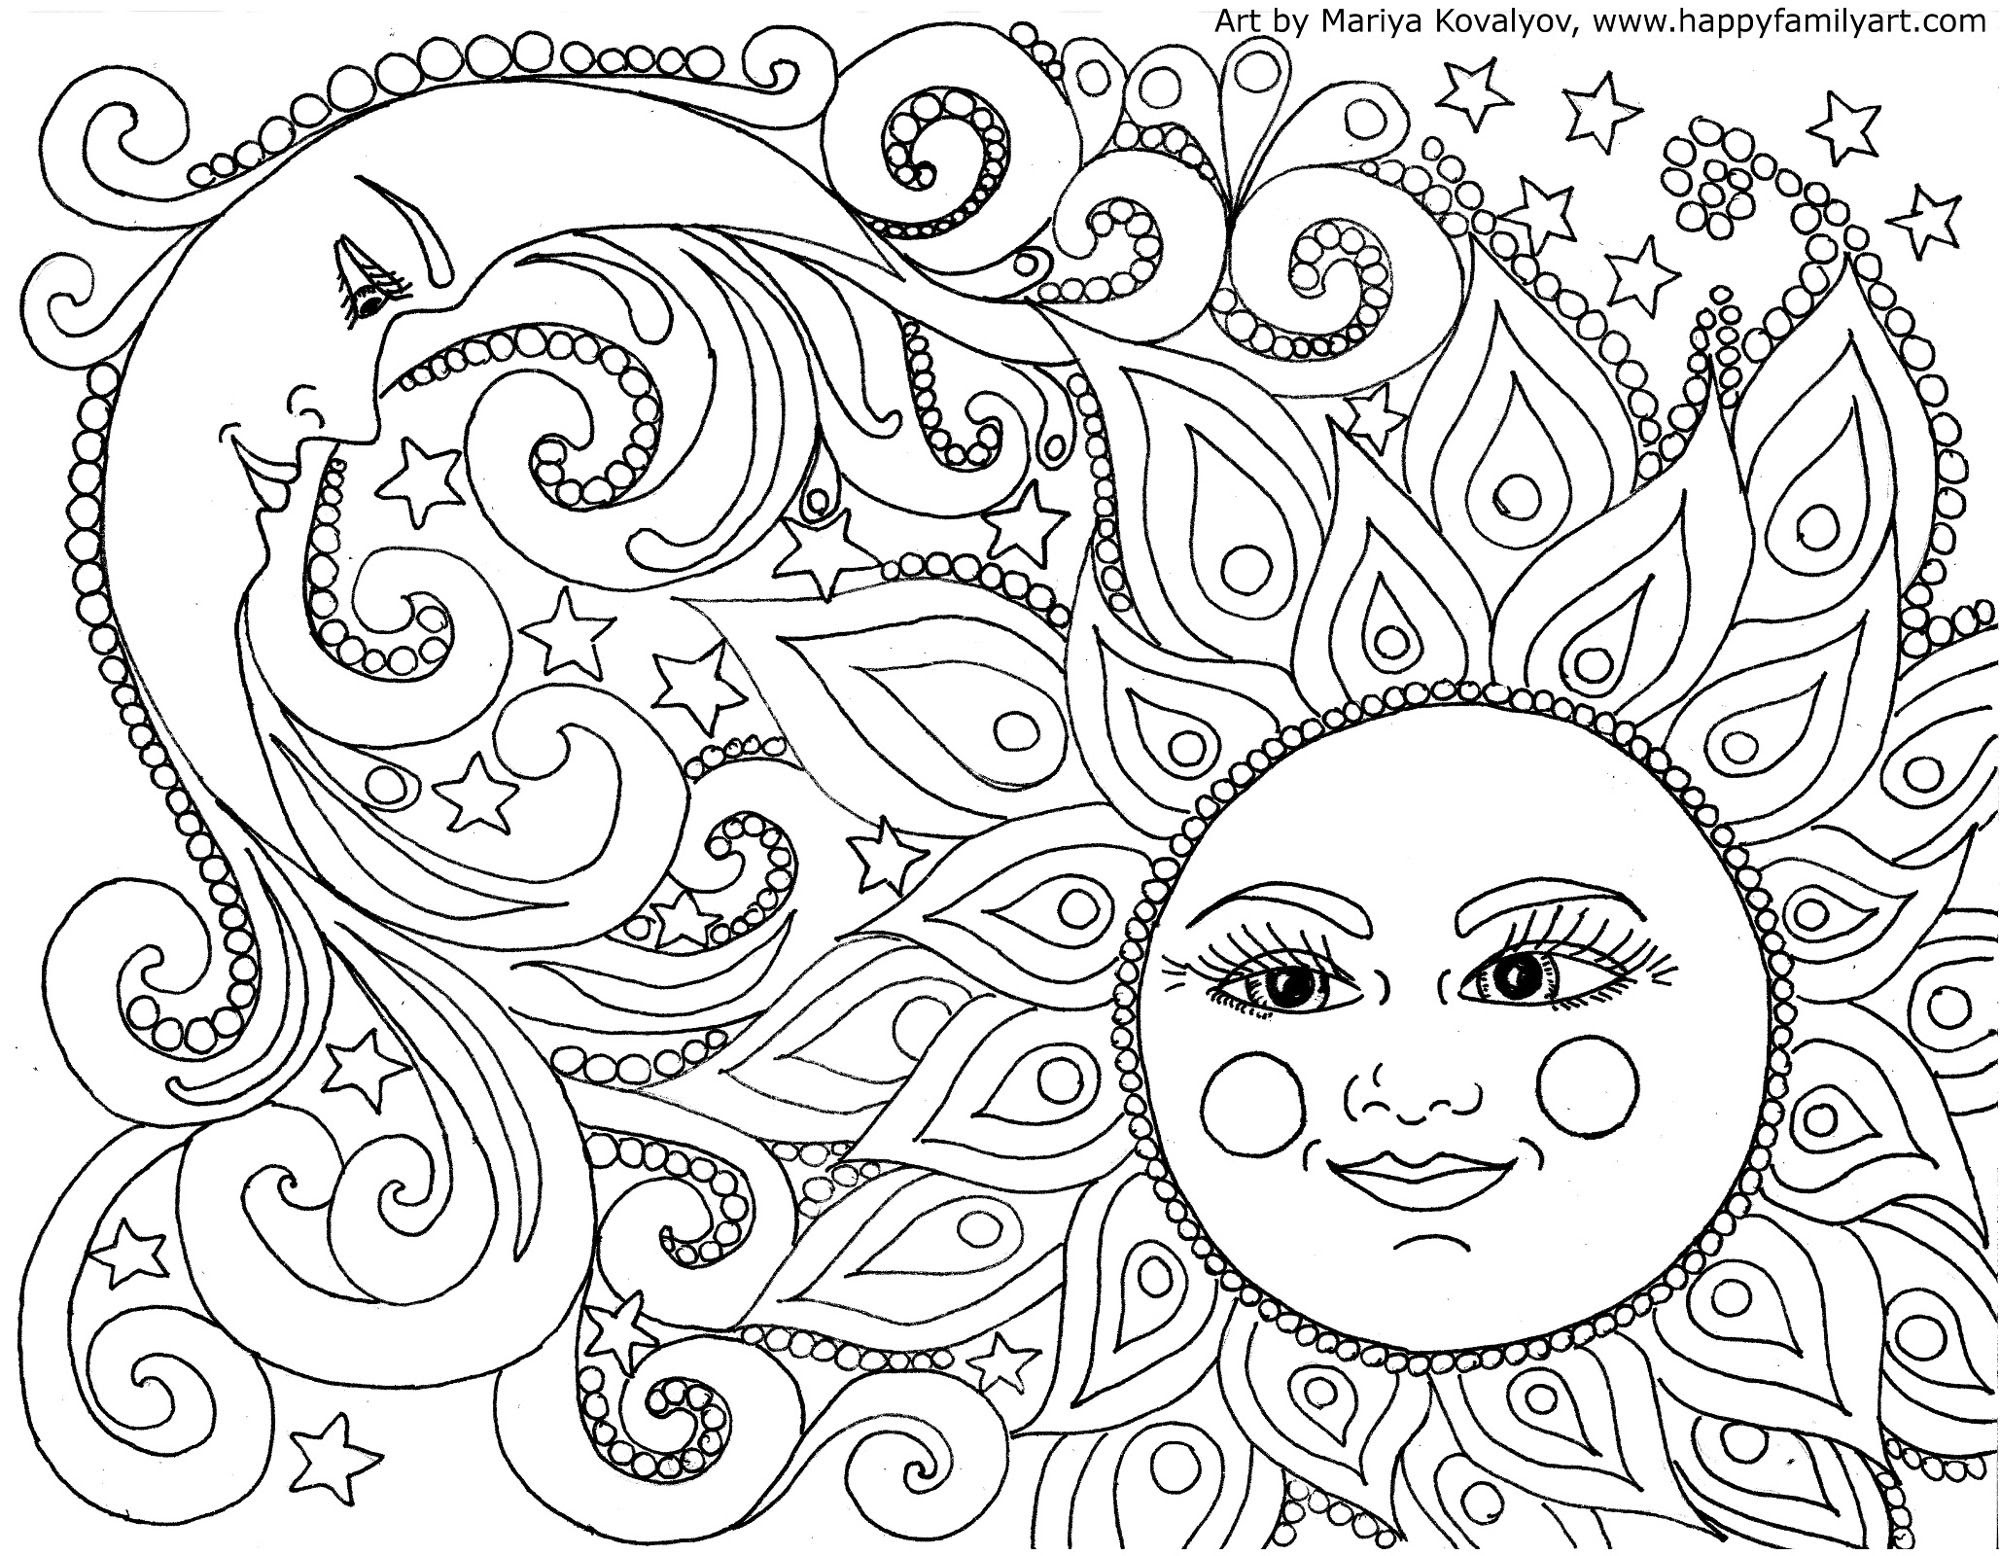 1000+ ideas about Adult Coloring Pages on Pinterest | Coloring ...